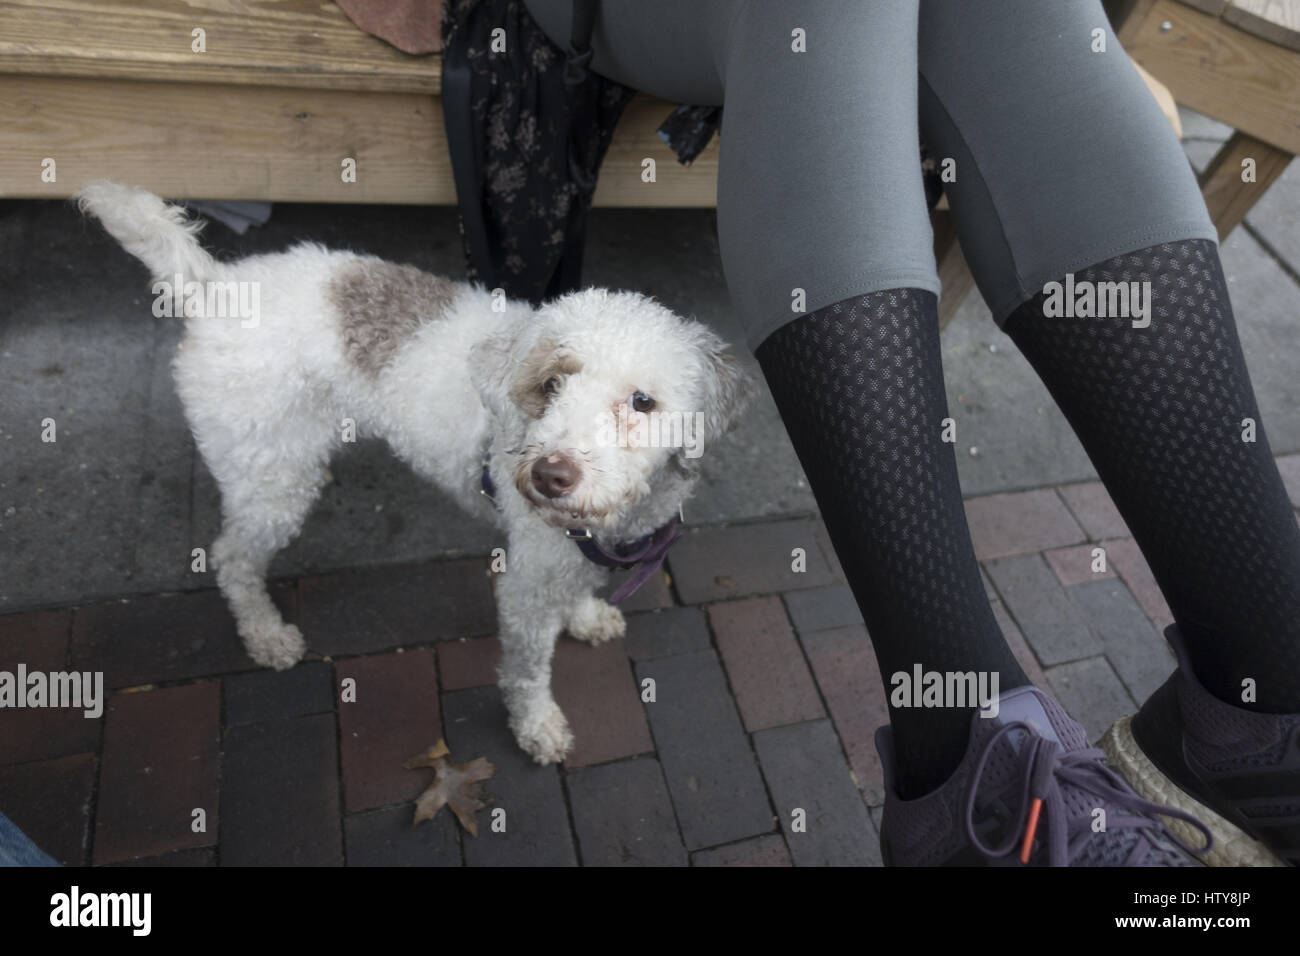 Good dog waits patiently next to his master as she drinks a latte. - Stock Image